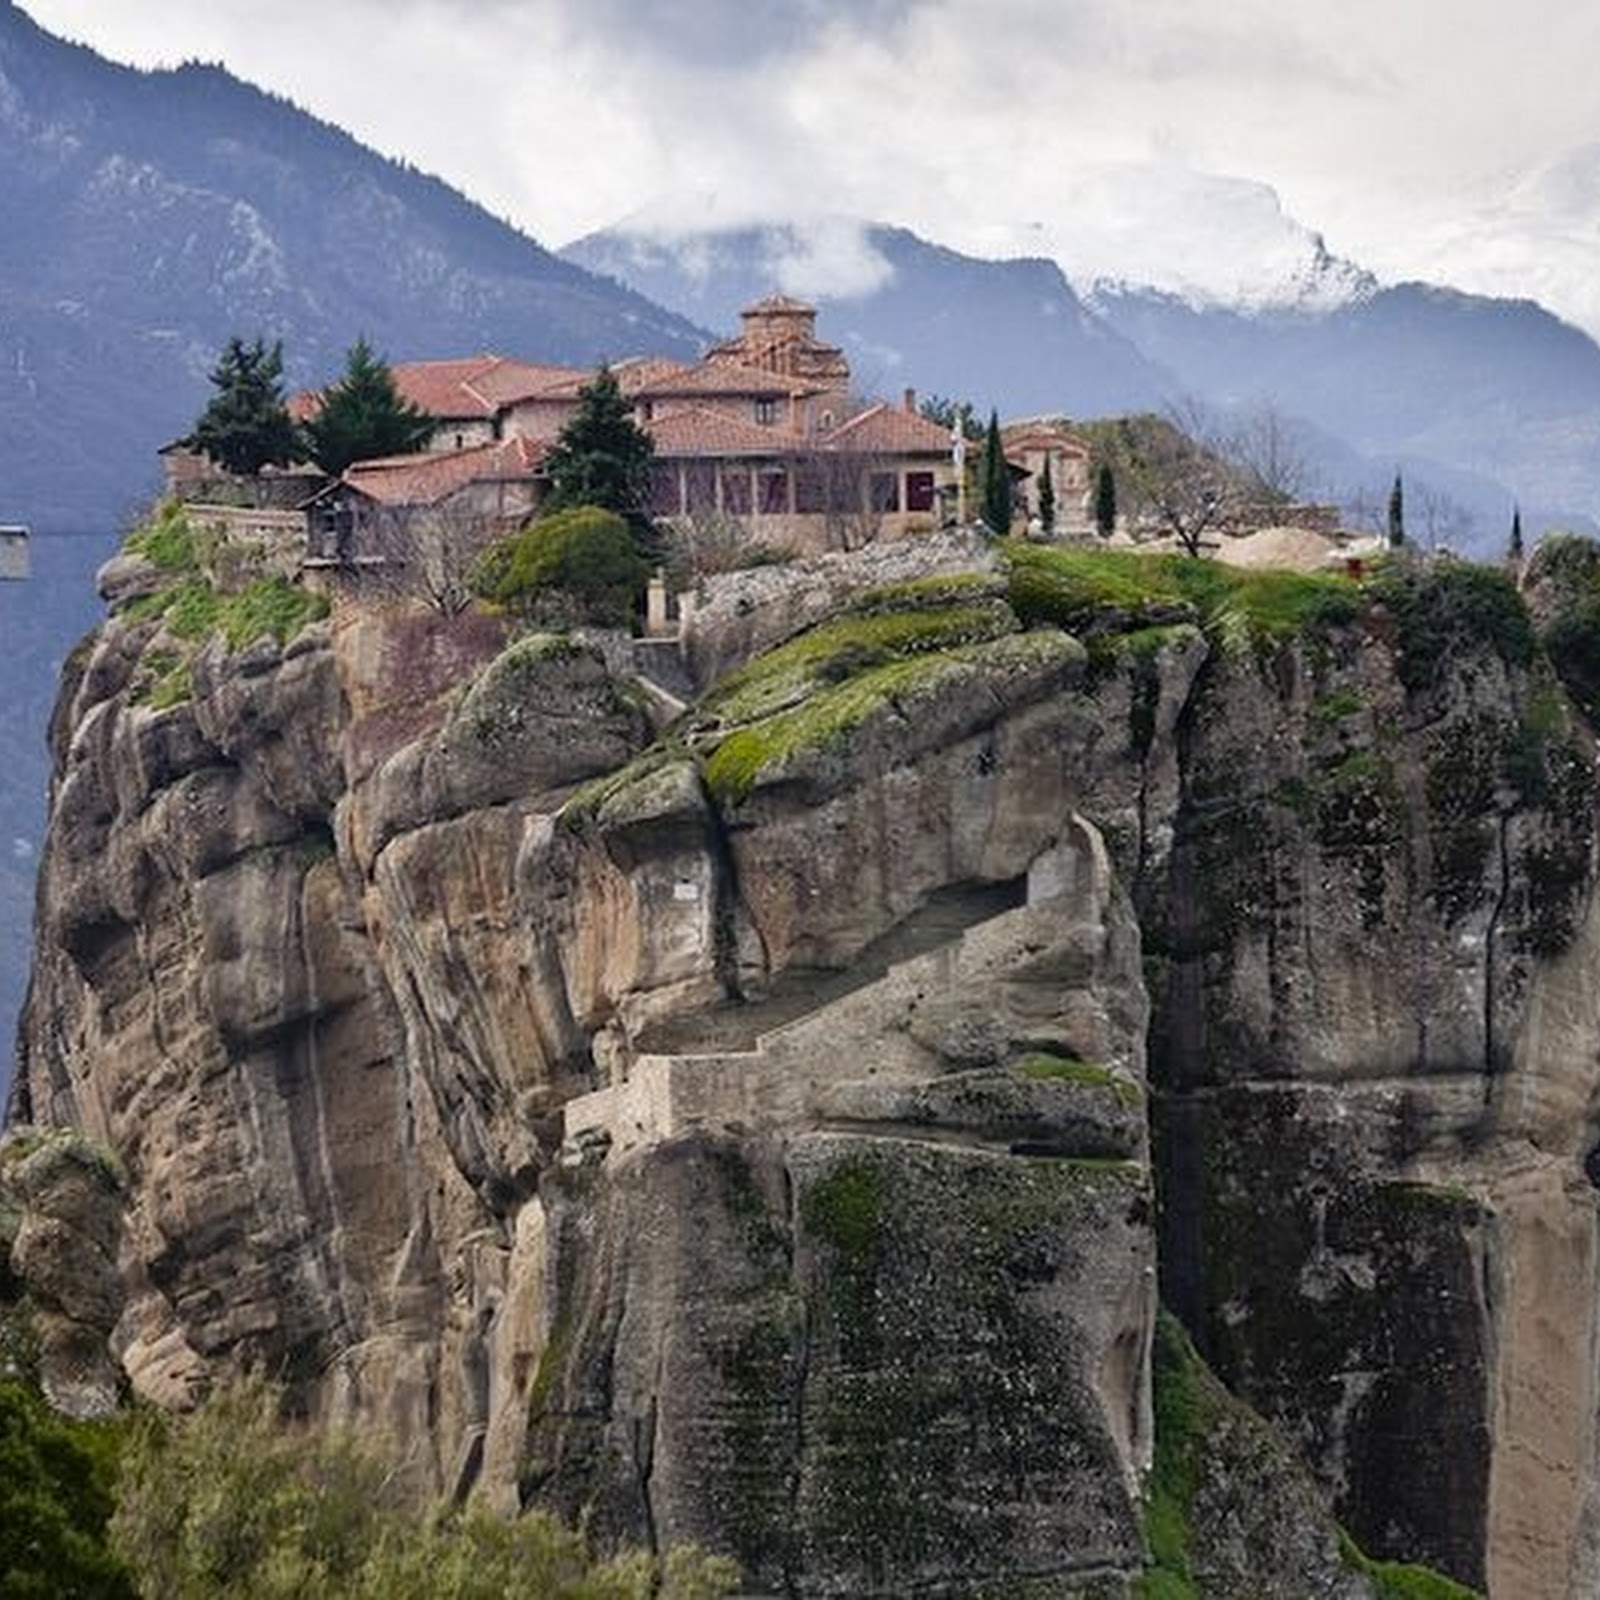 5 Most Inaccessible Monasteries in the World